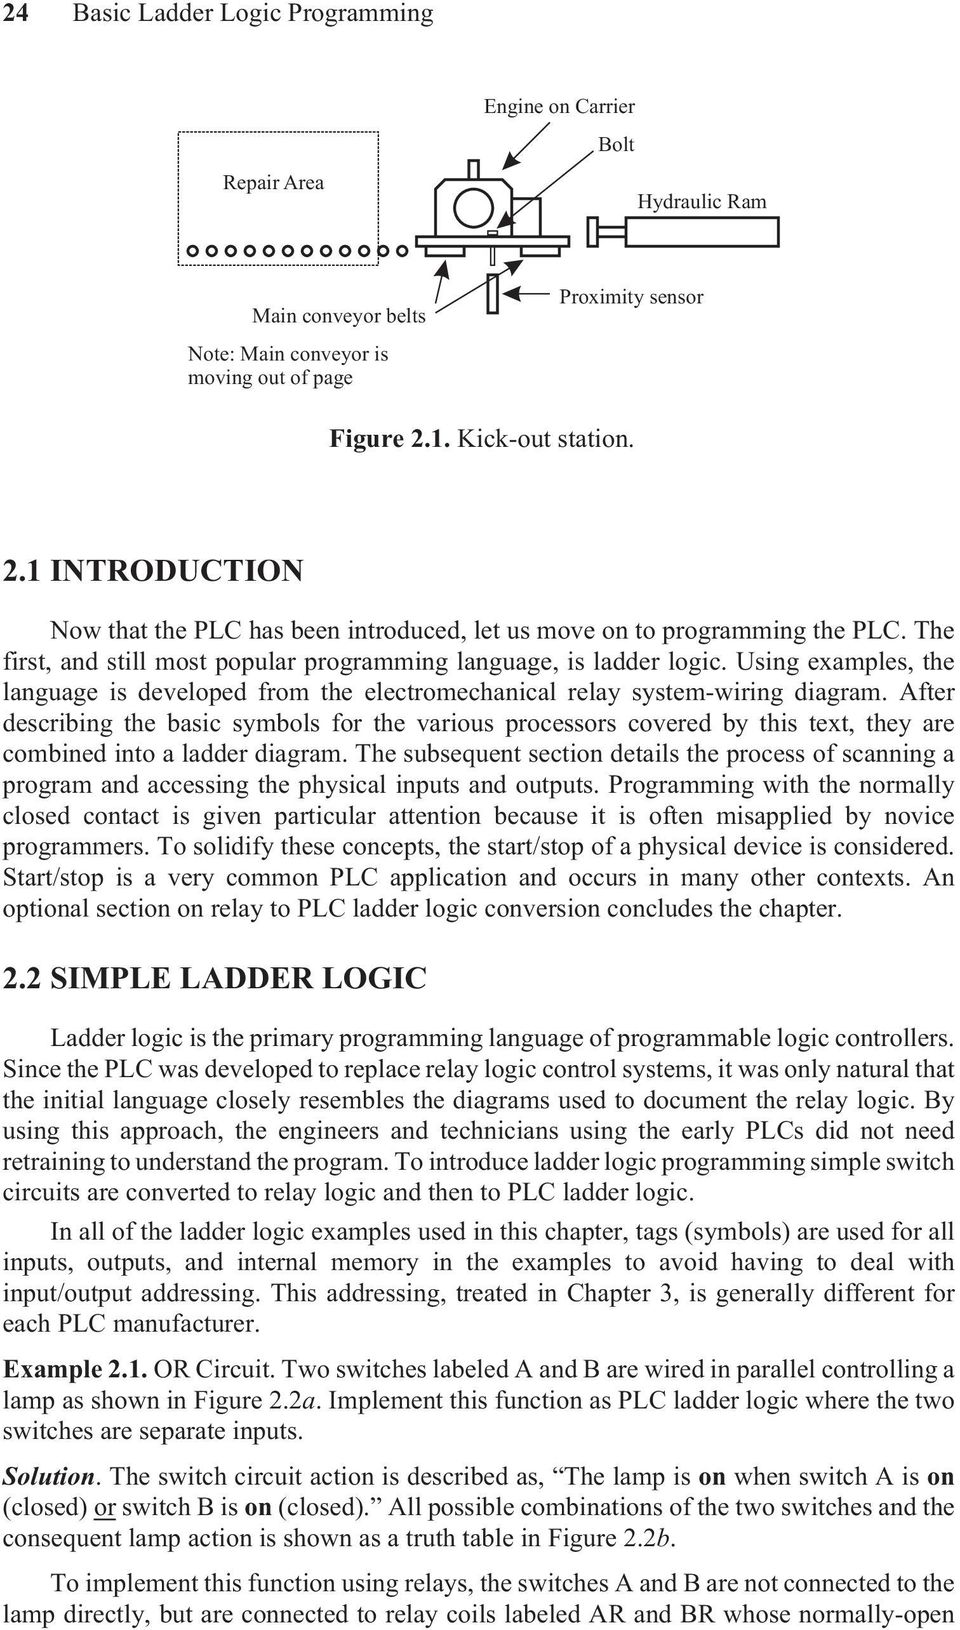 2 Basic Ladder Logic Programming Pdf Simple Relay Diagram Using Examples The Language Is Developed From Electromechanical System Wiring 3 22 Ldder